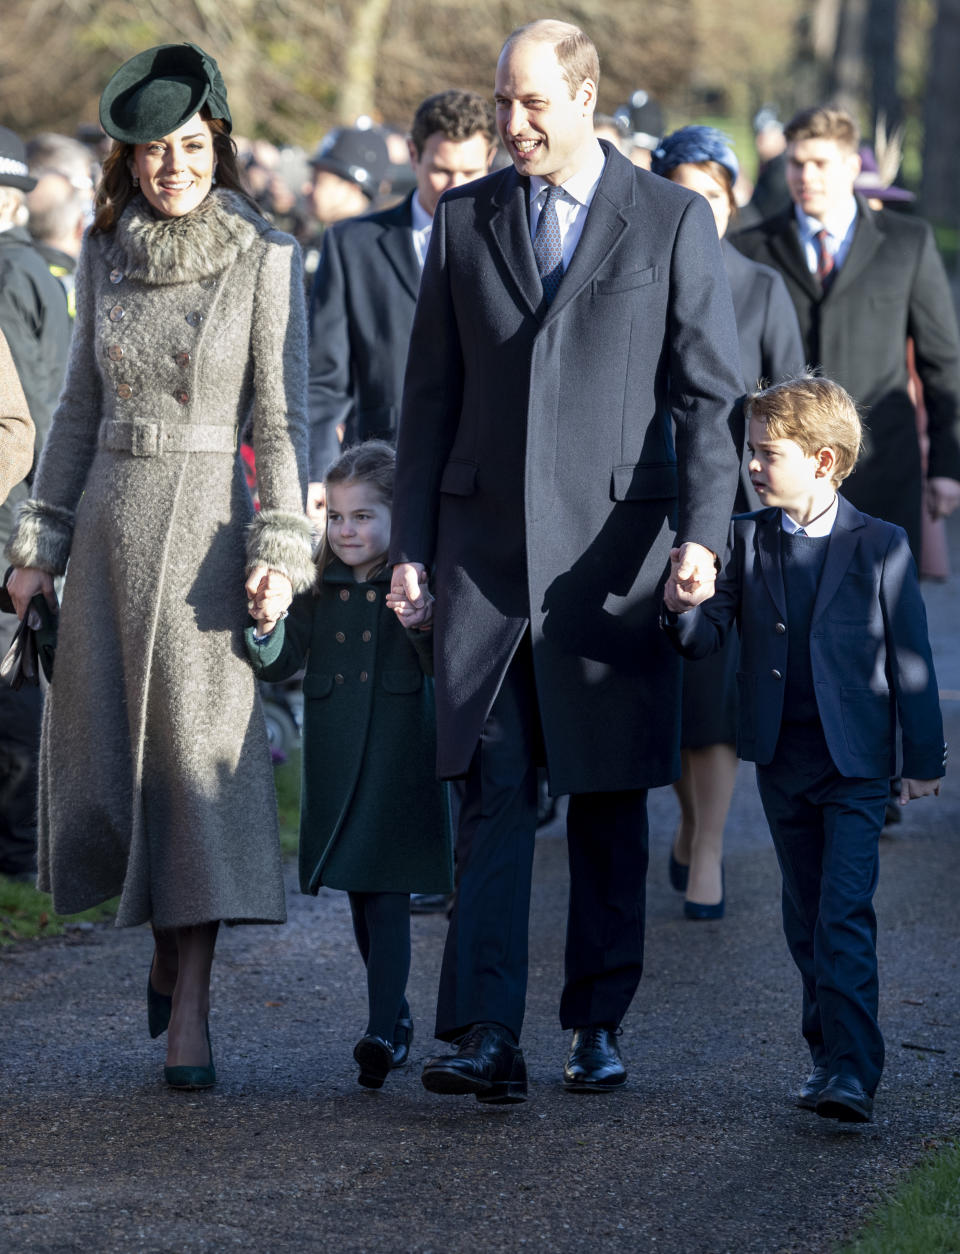 Prince William, Duke of Cambridge and Catherine, Duchess of Cambridge with Prince George of Cambridge and Princess Charlotte of Cambridge attend the Christmas Day Church service at Church of St Mary Magdalene on the Sandringham estate on December 25, 2019 in King's Lynn, United Kingdom. (Photo by UK Press Pool/UK Press via Getty Images)